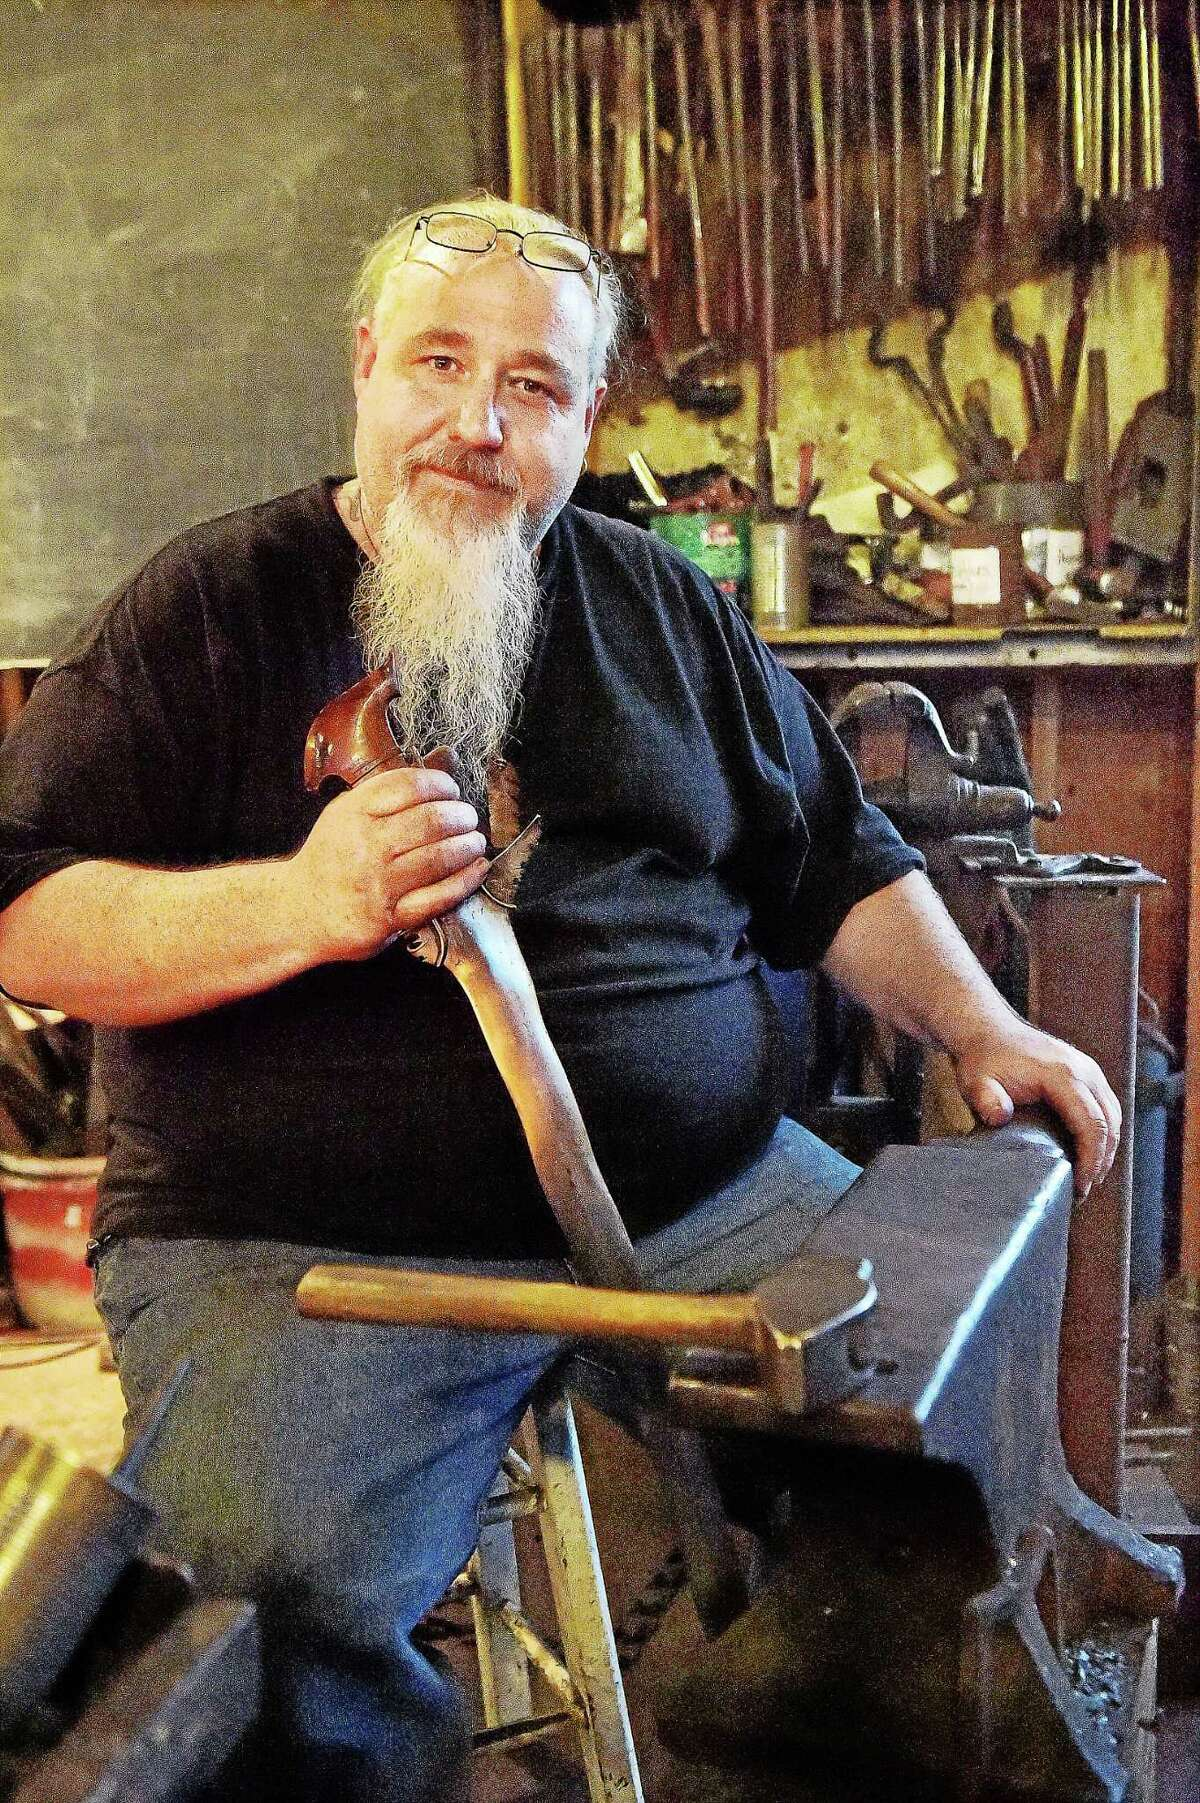 Guilford bladesmith Mace Vitale, rated Journeyman smith with the American Bladesmith Society and owner of Laurel Rock Forge , is photographed Wednesday, August 13, 2015, at the Guilford Art Center where he teaches Blacksmithing. Vitale holds an antique Phillipine version of the Kris Sword, similar to the Moro Kris Sword he made when he won the History Channel's Forged in Fire.